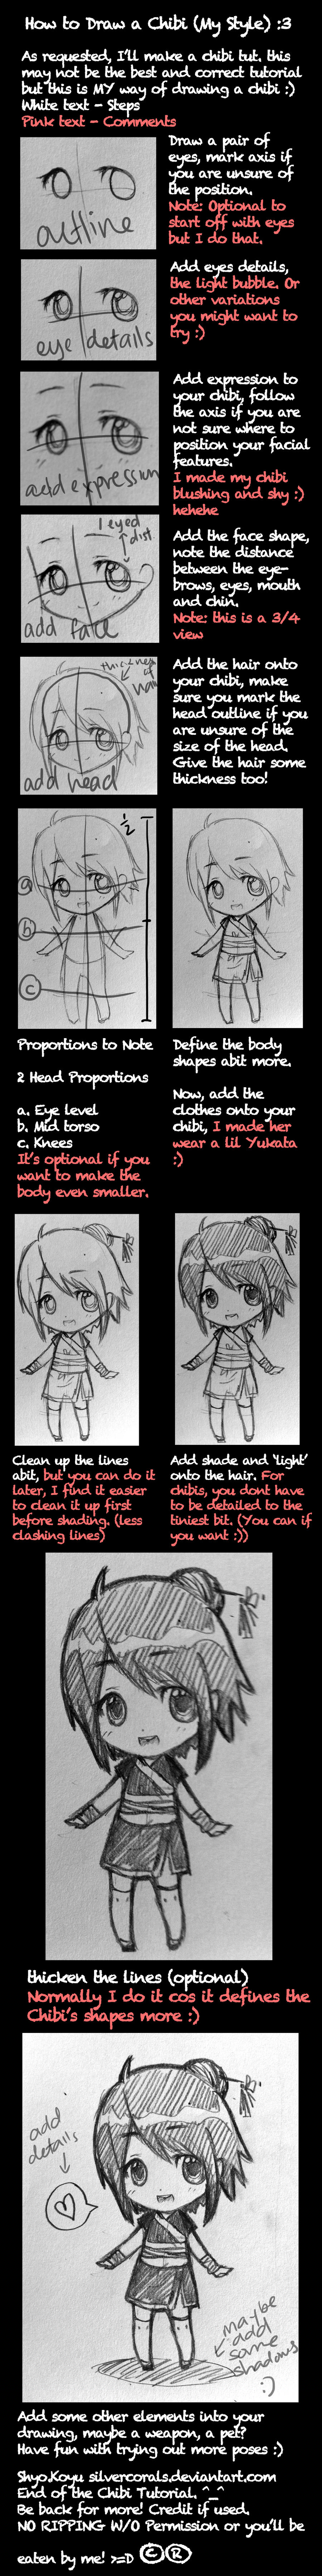 How to Draw A Chibi Tutorial by bunnify